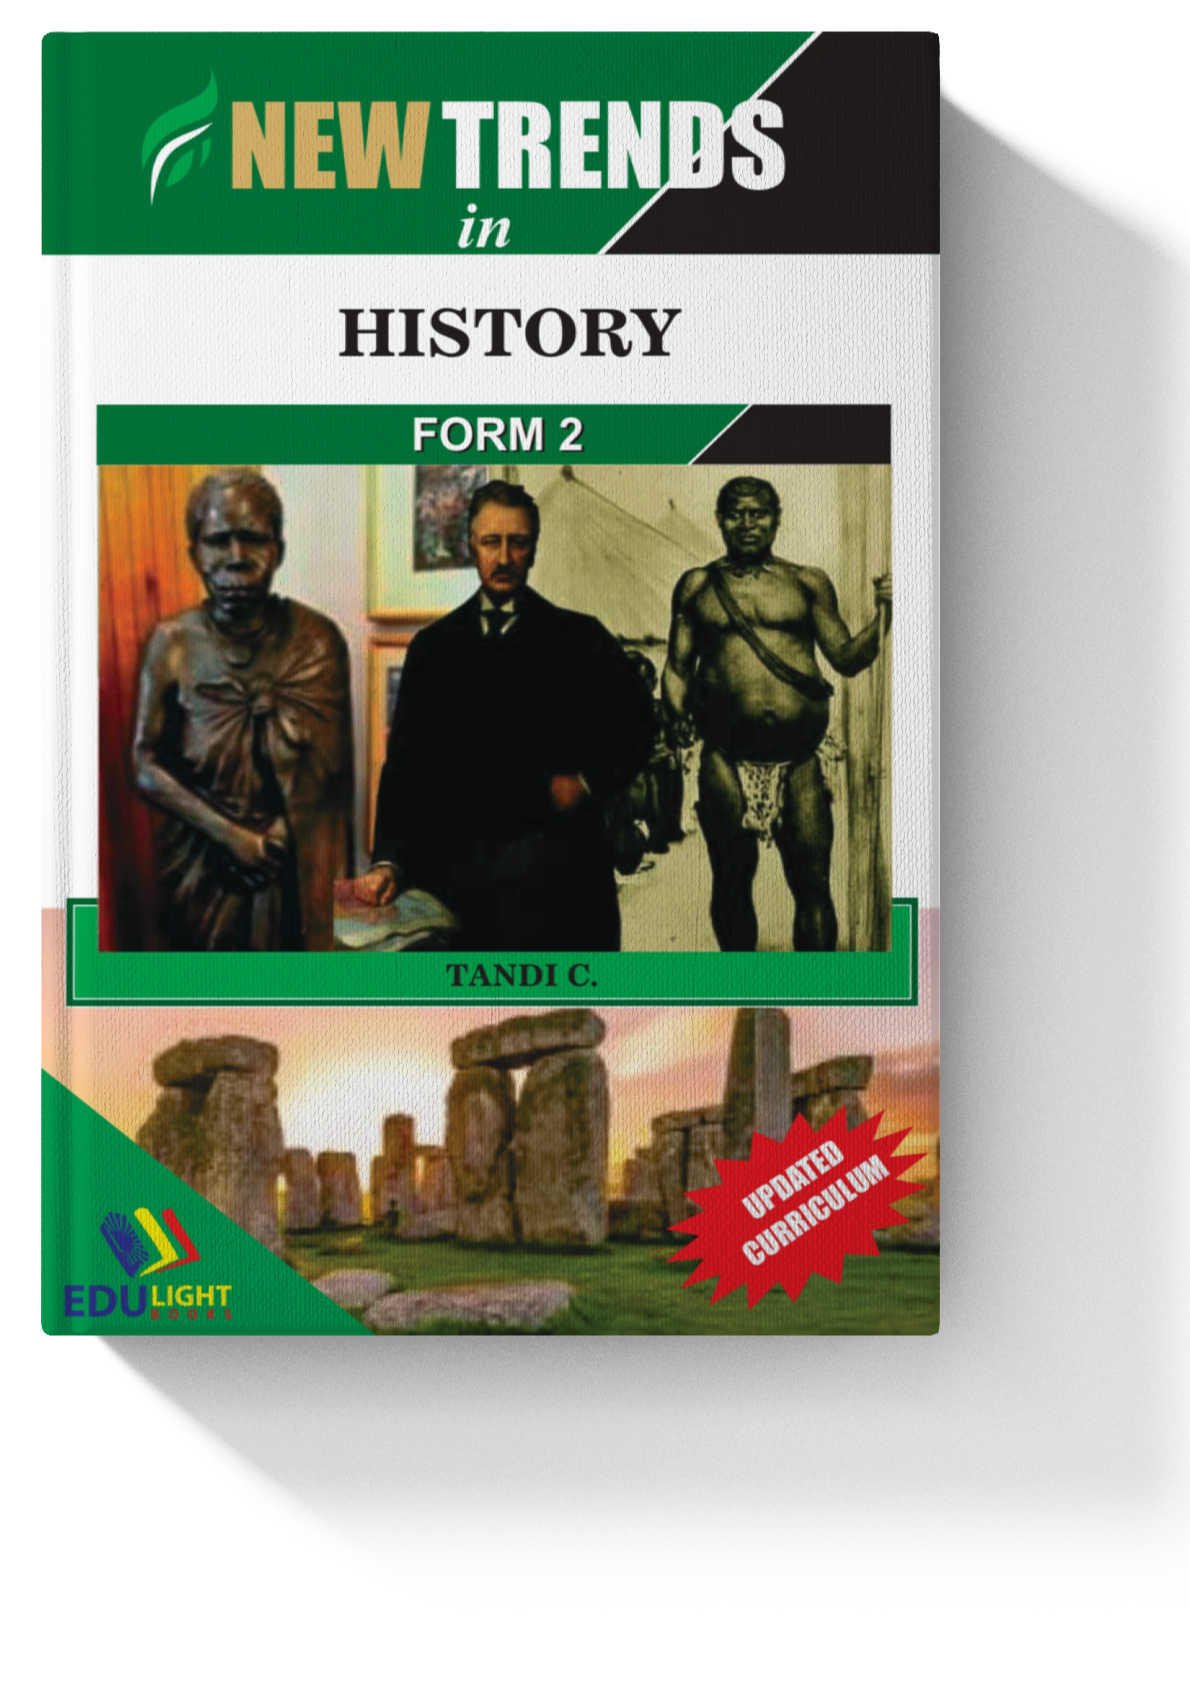 New Trends in History LB Form 2